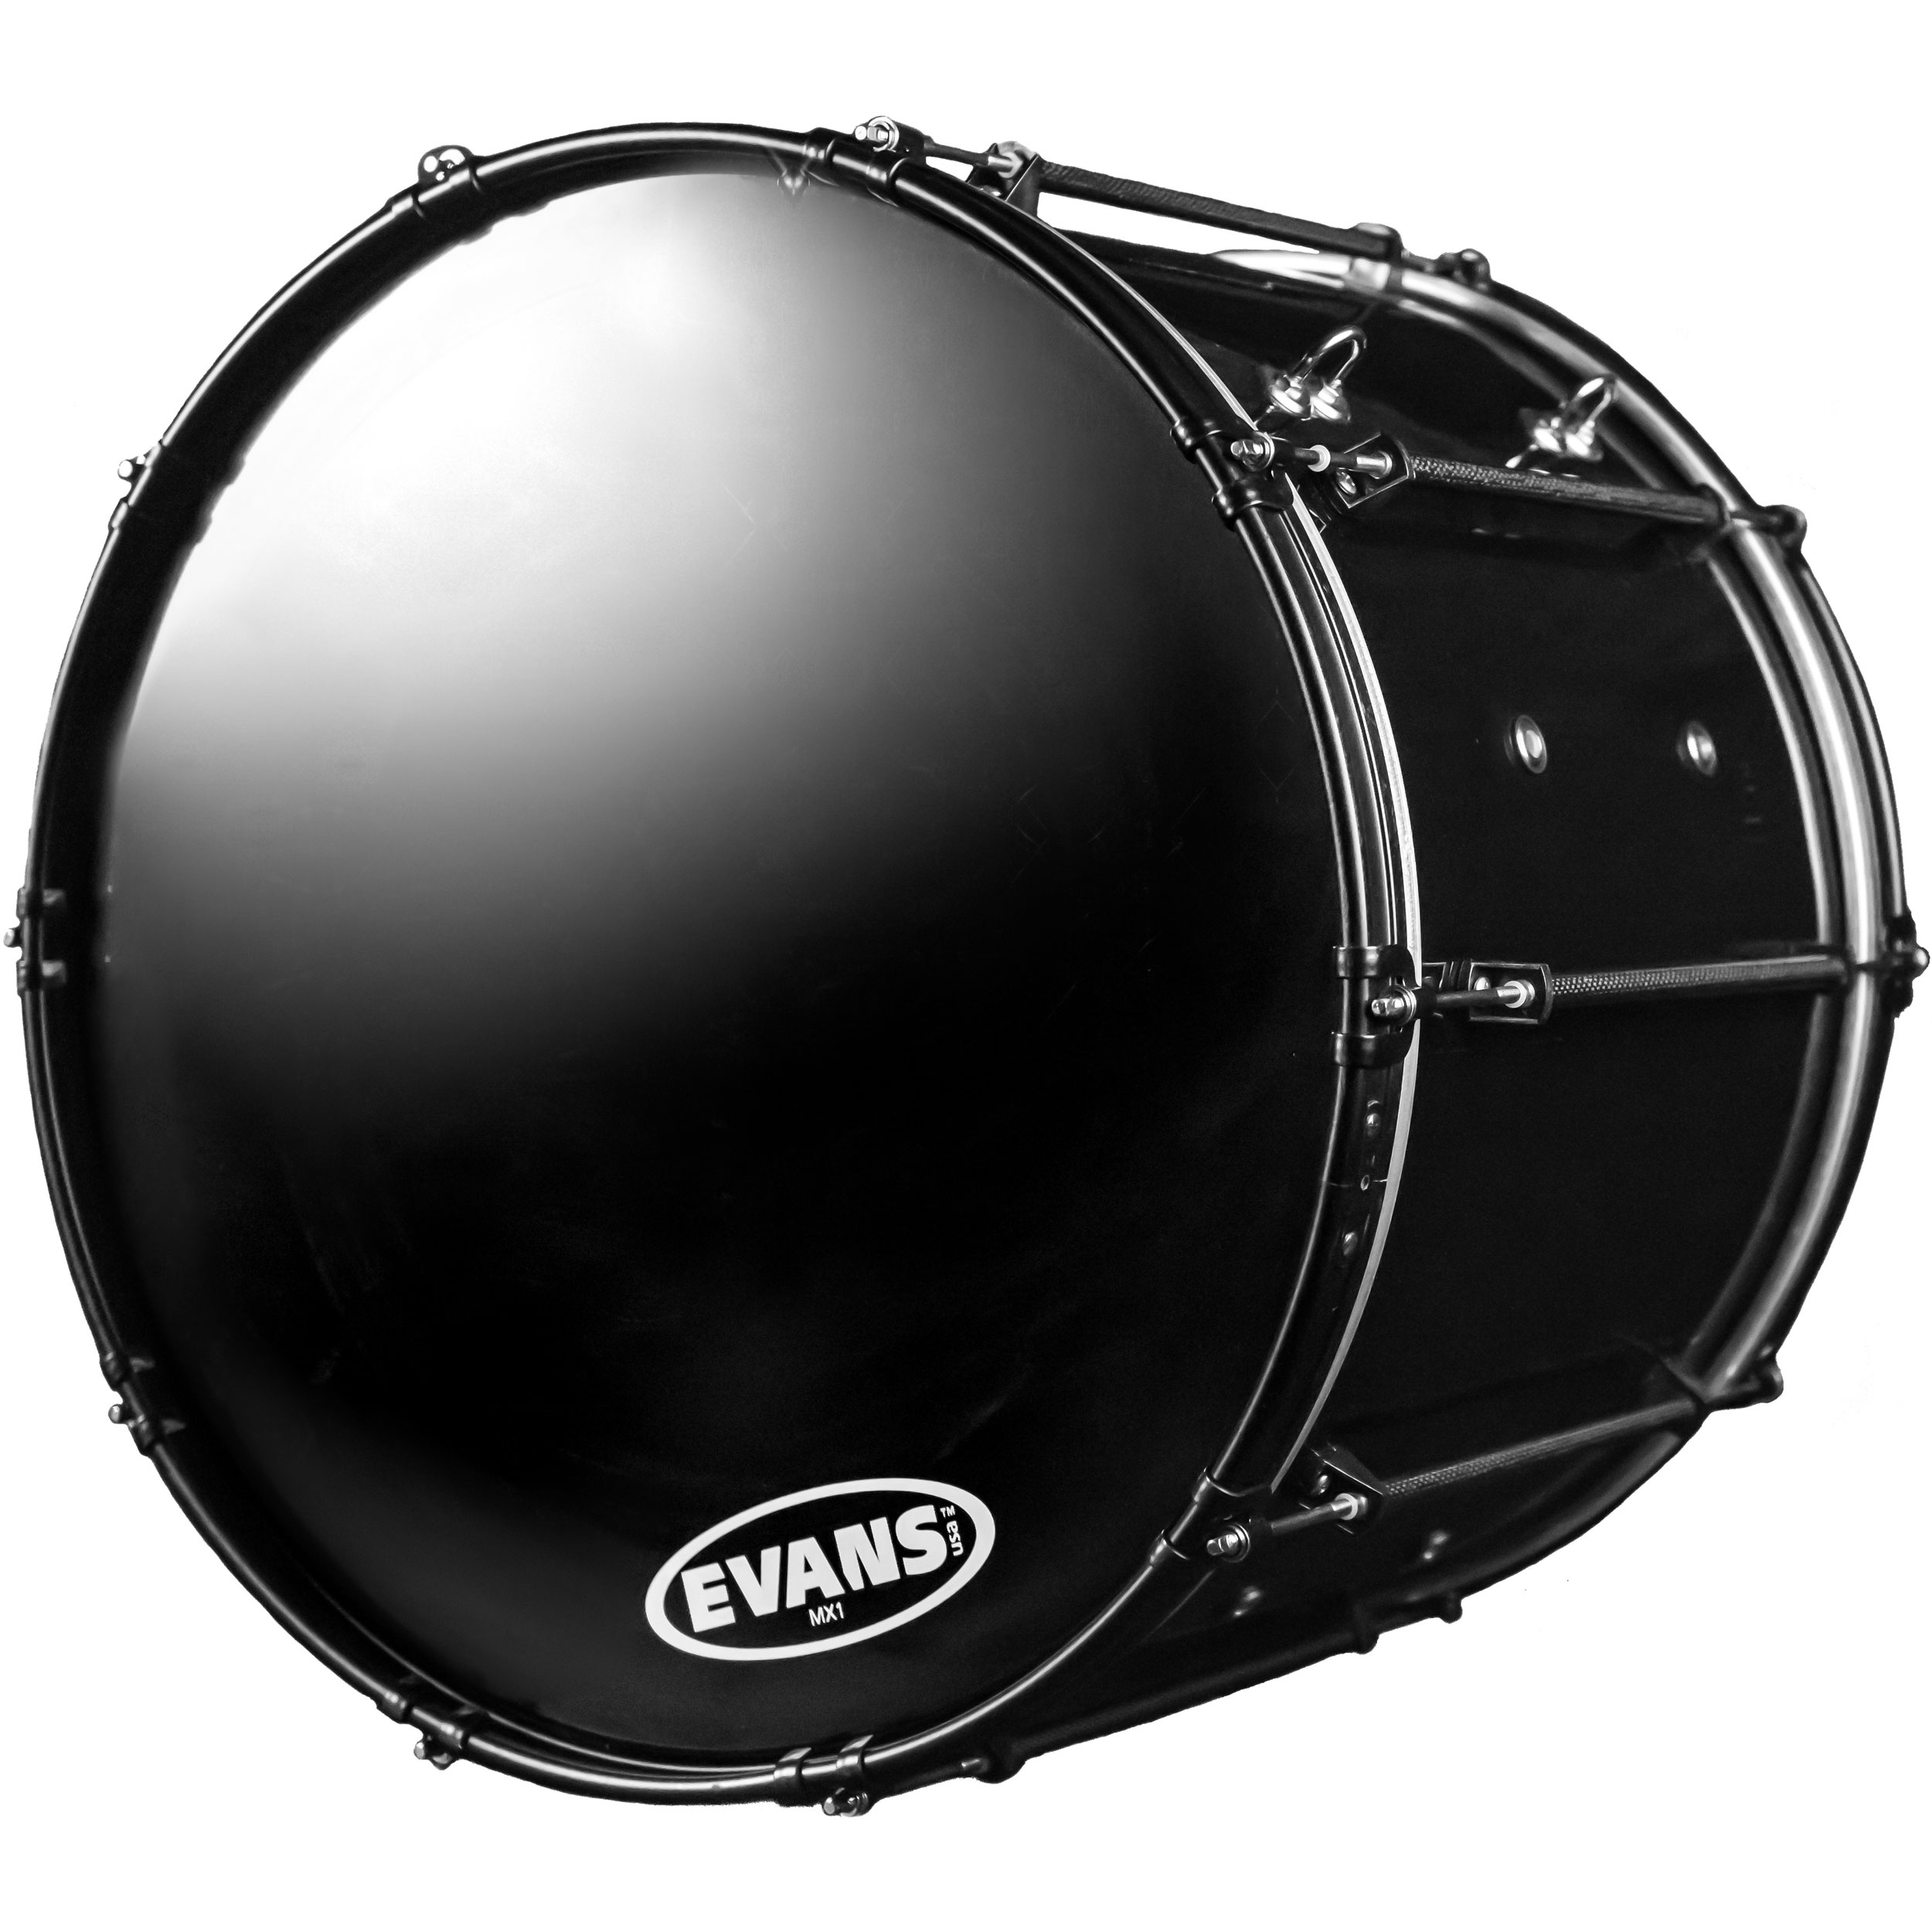 "System Blue 18"" Professional Series Marching Bass Drum"